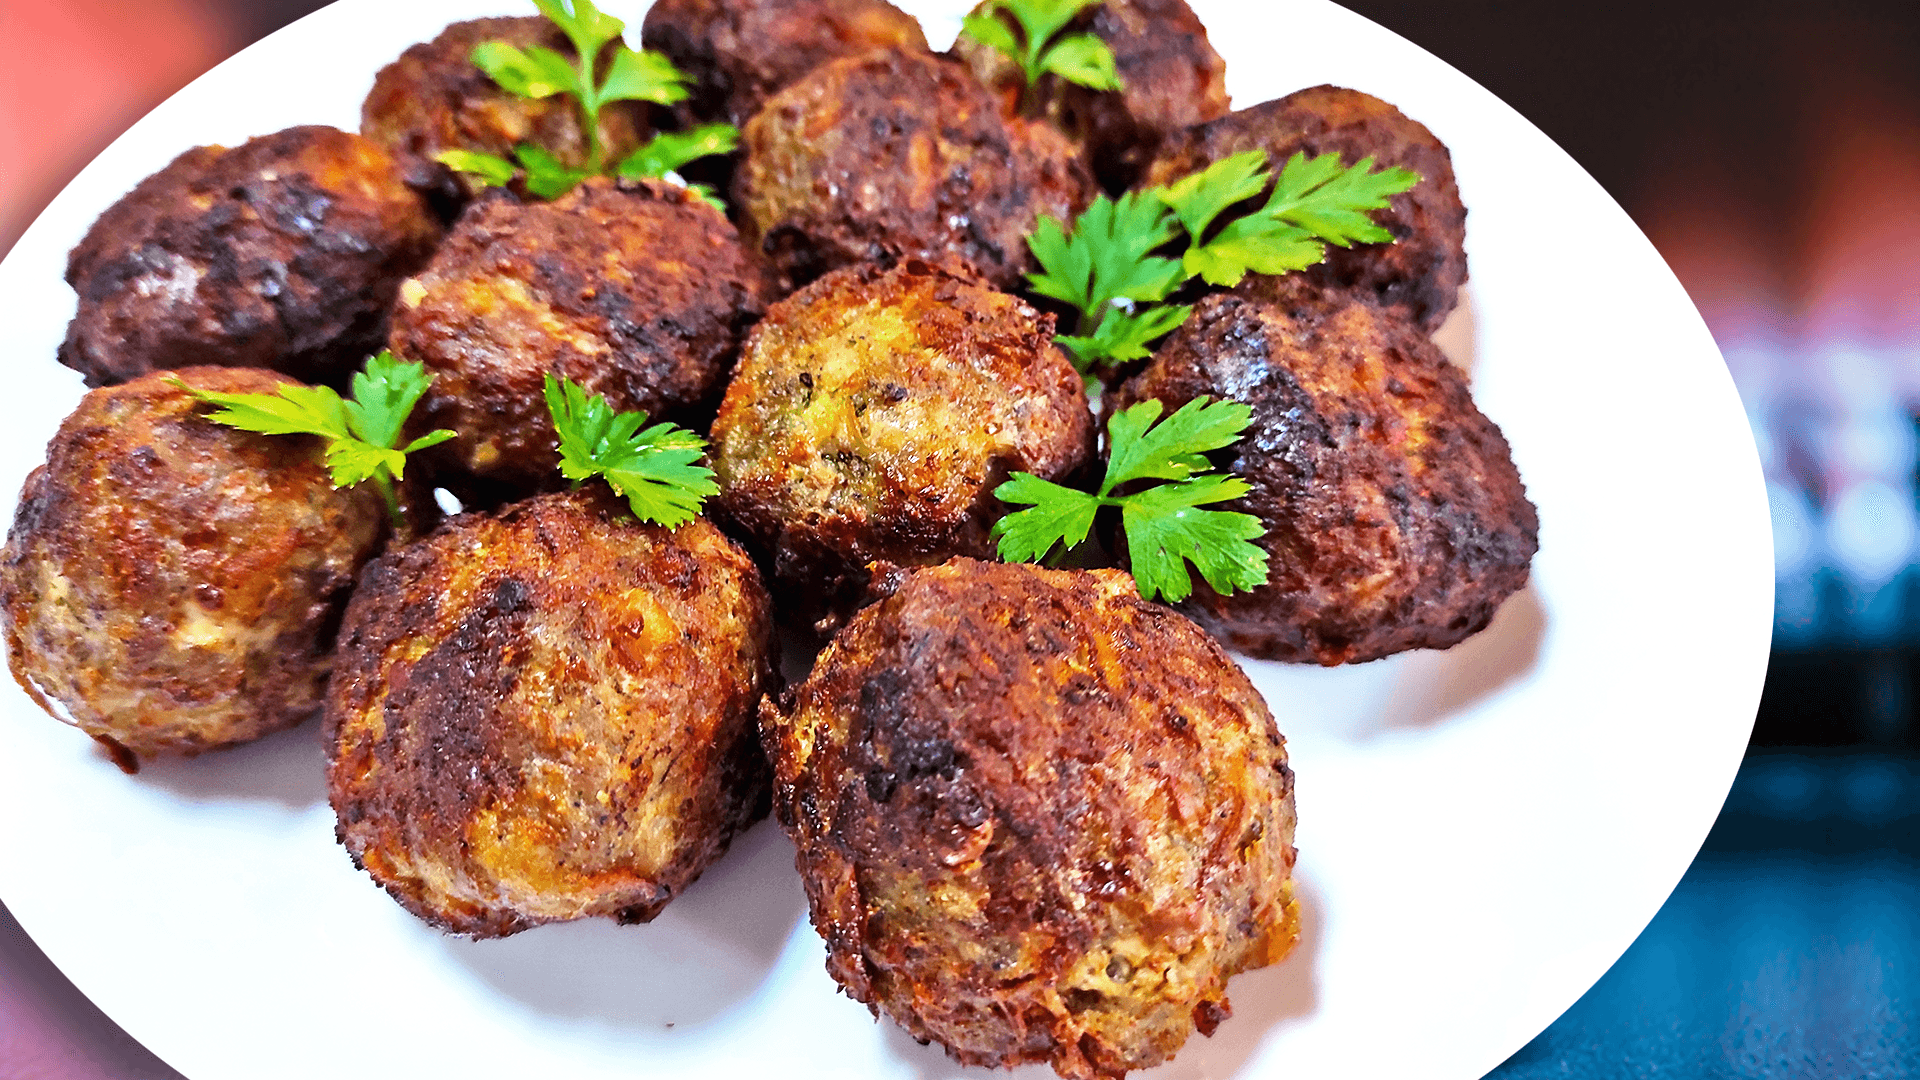 Easy Making Pork Meatballs (Homemade Meatballs Recipe)